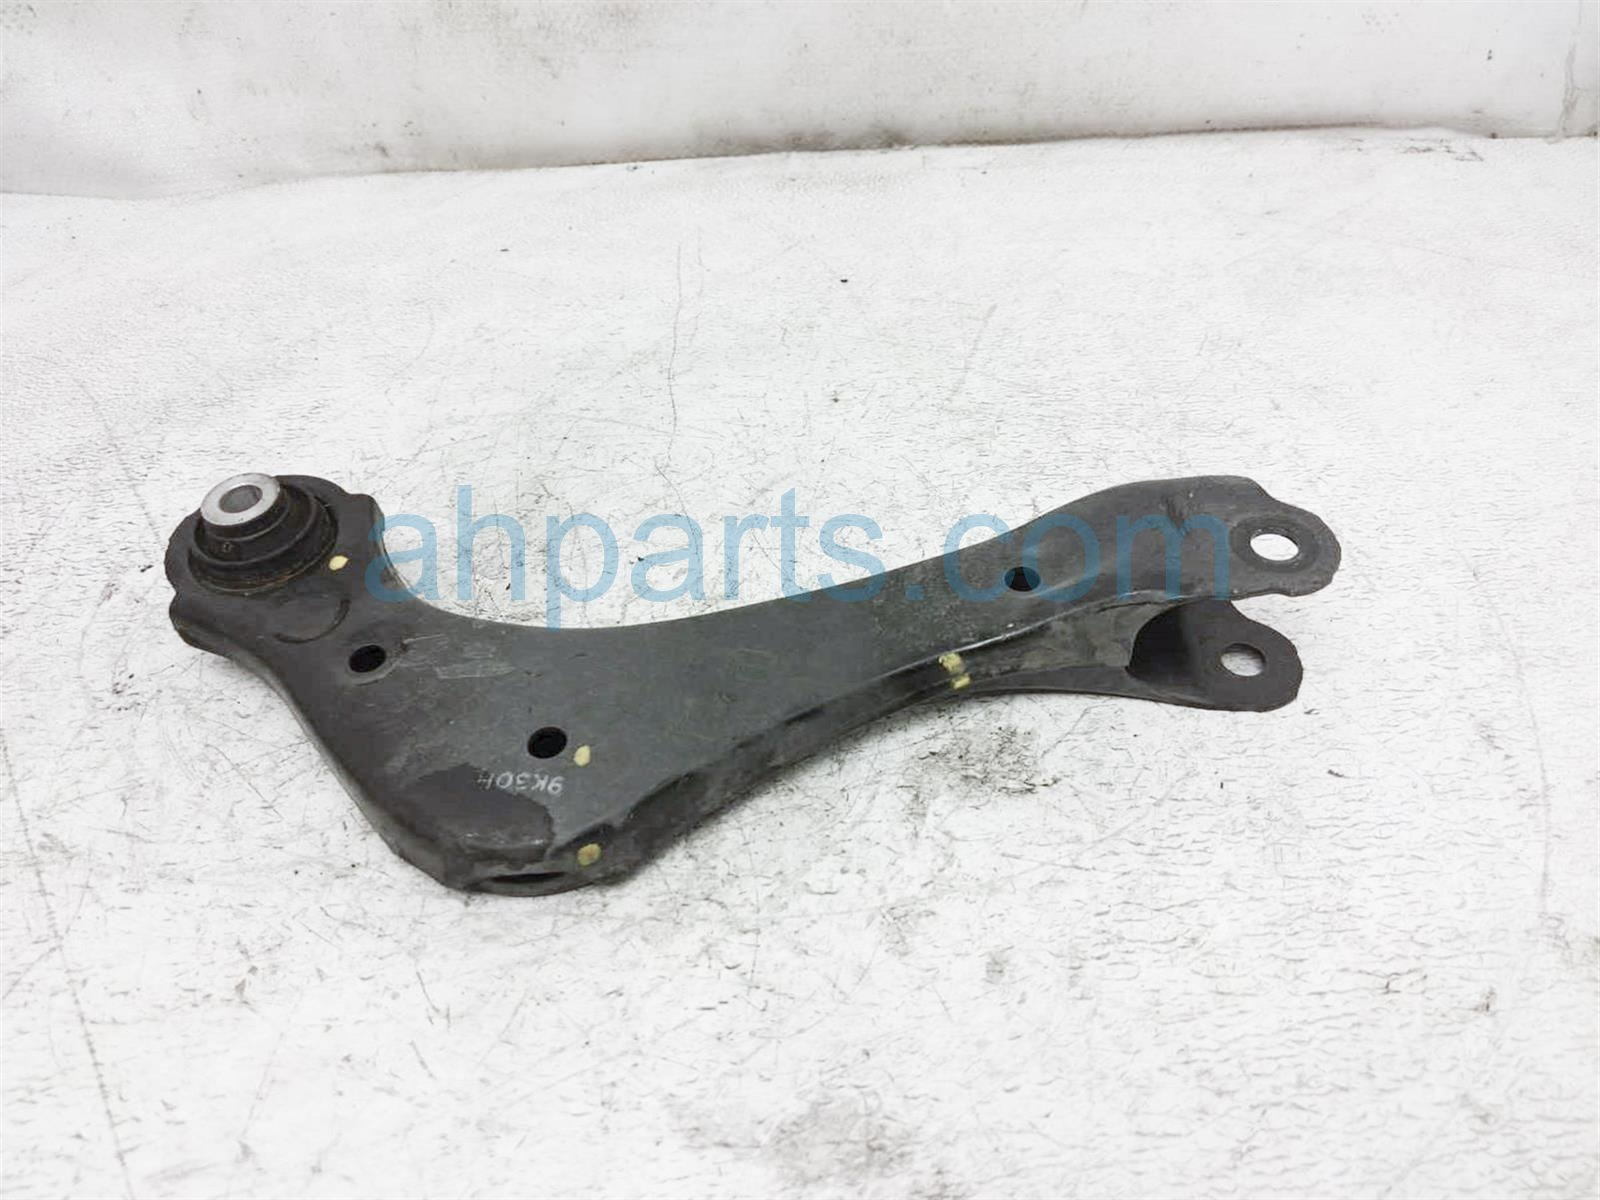 Sold 2019 Toyota Rav 4 Rear Driver Upper Control Arm 48790 0R020 Replacement